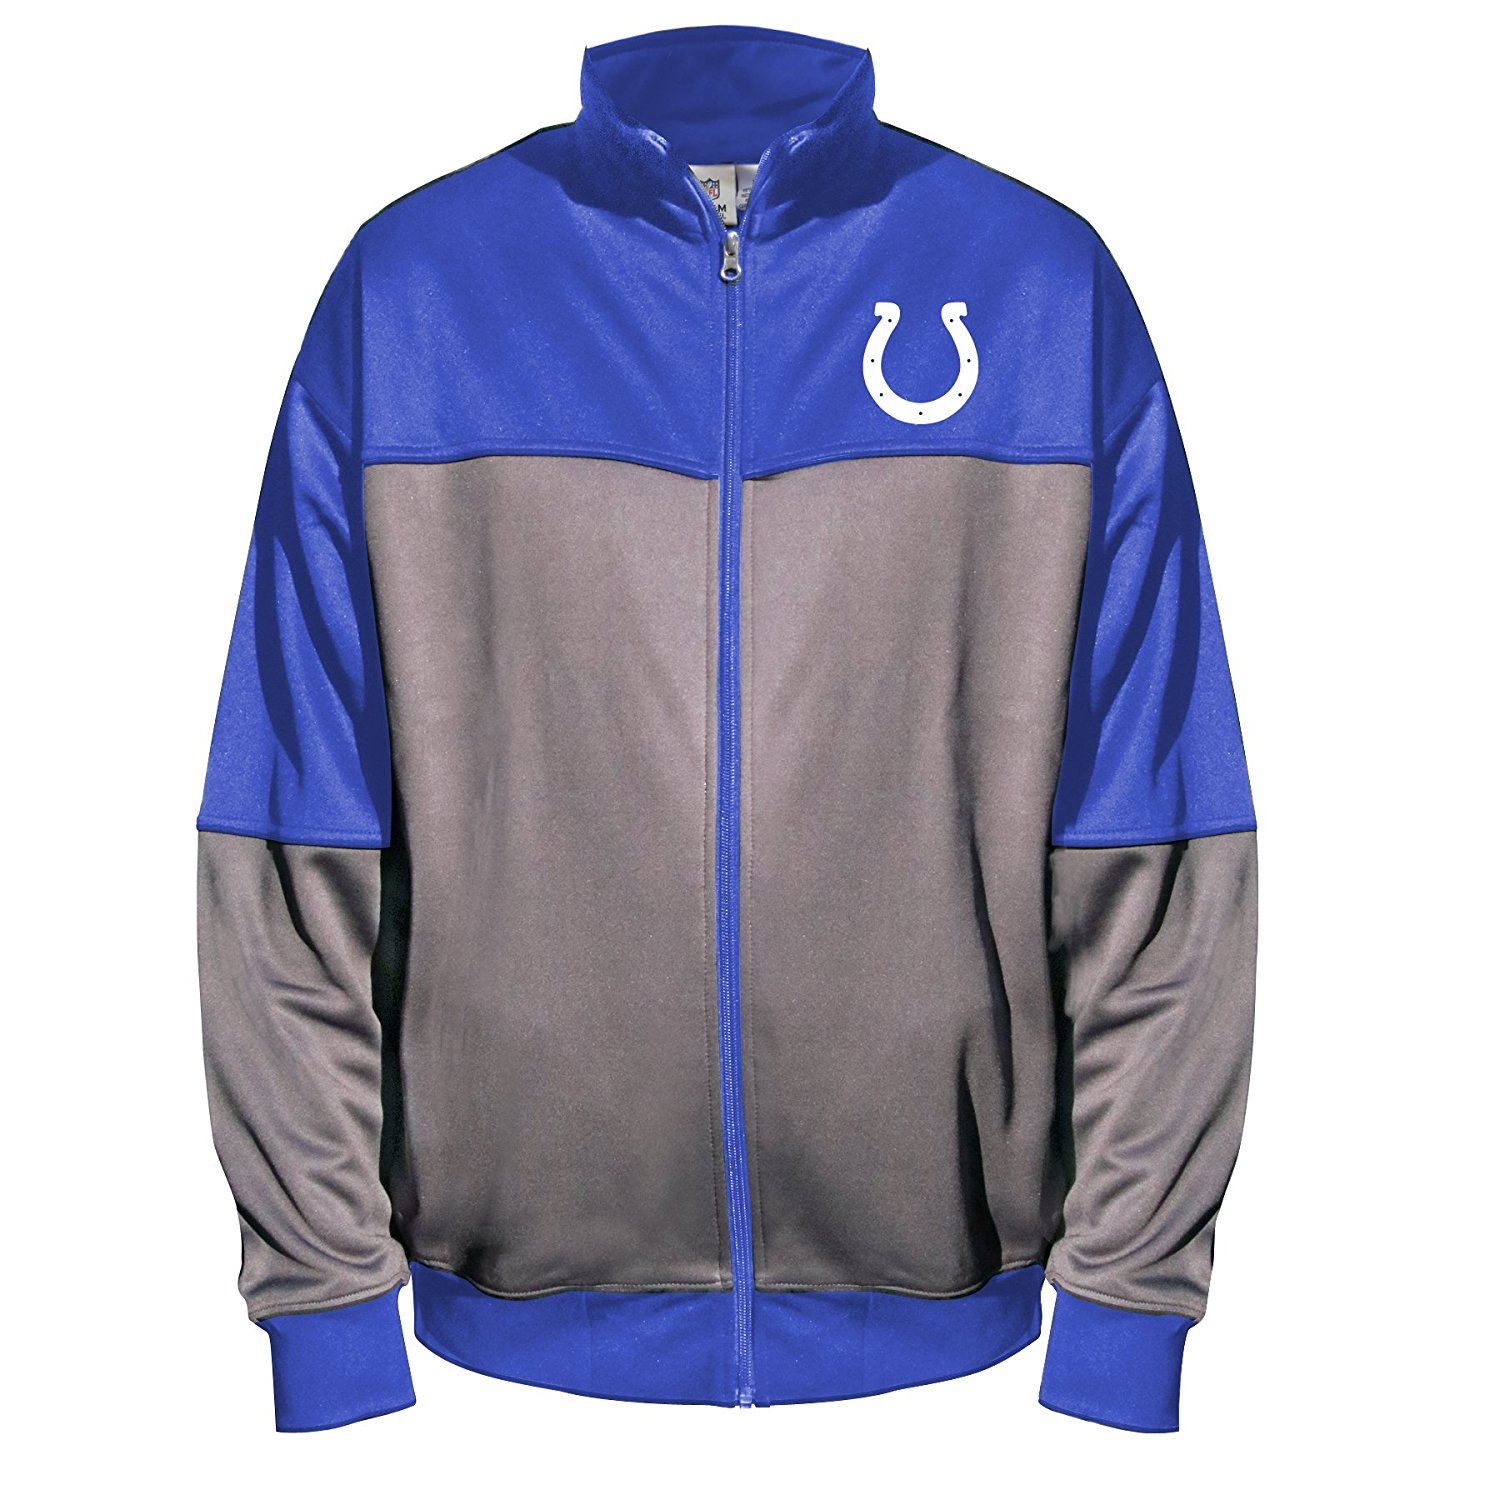 NFL Indianapolis Colts Unisex Poly fleece Track Jacket, CHARCOAL/Blue, 2X